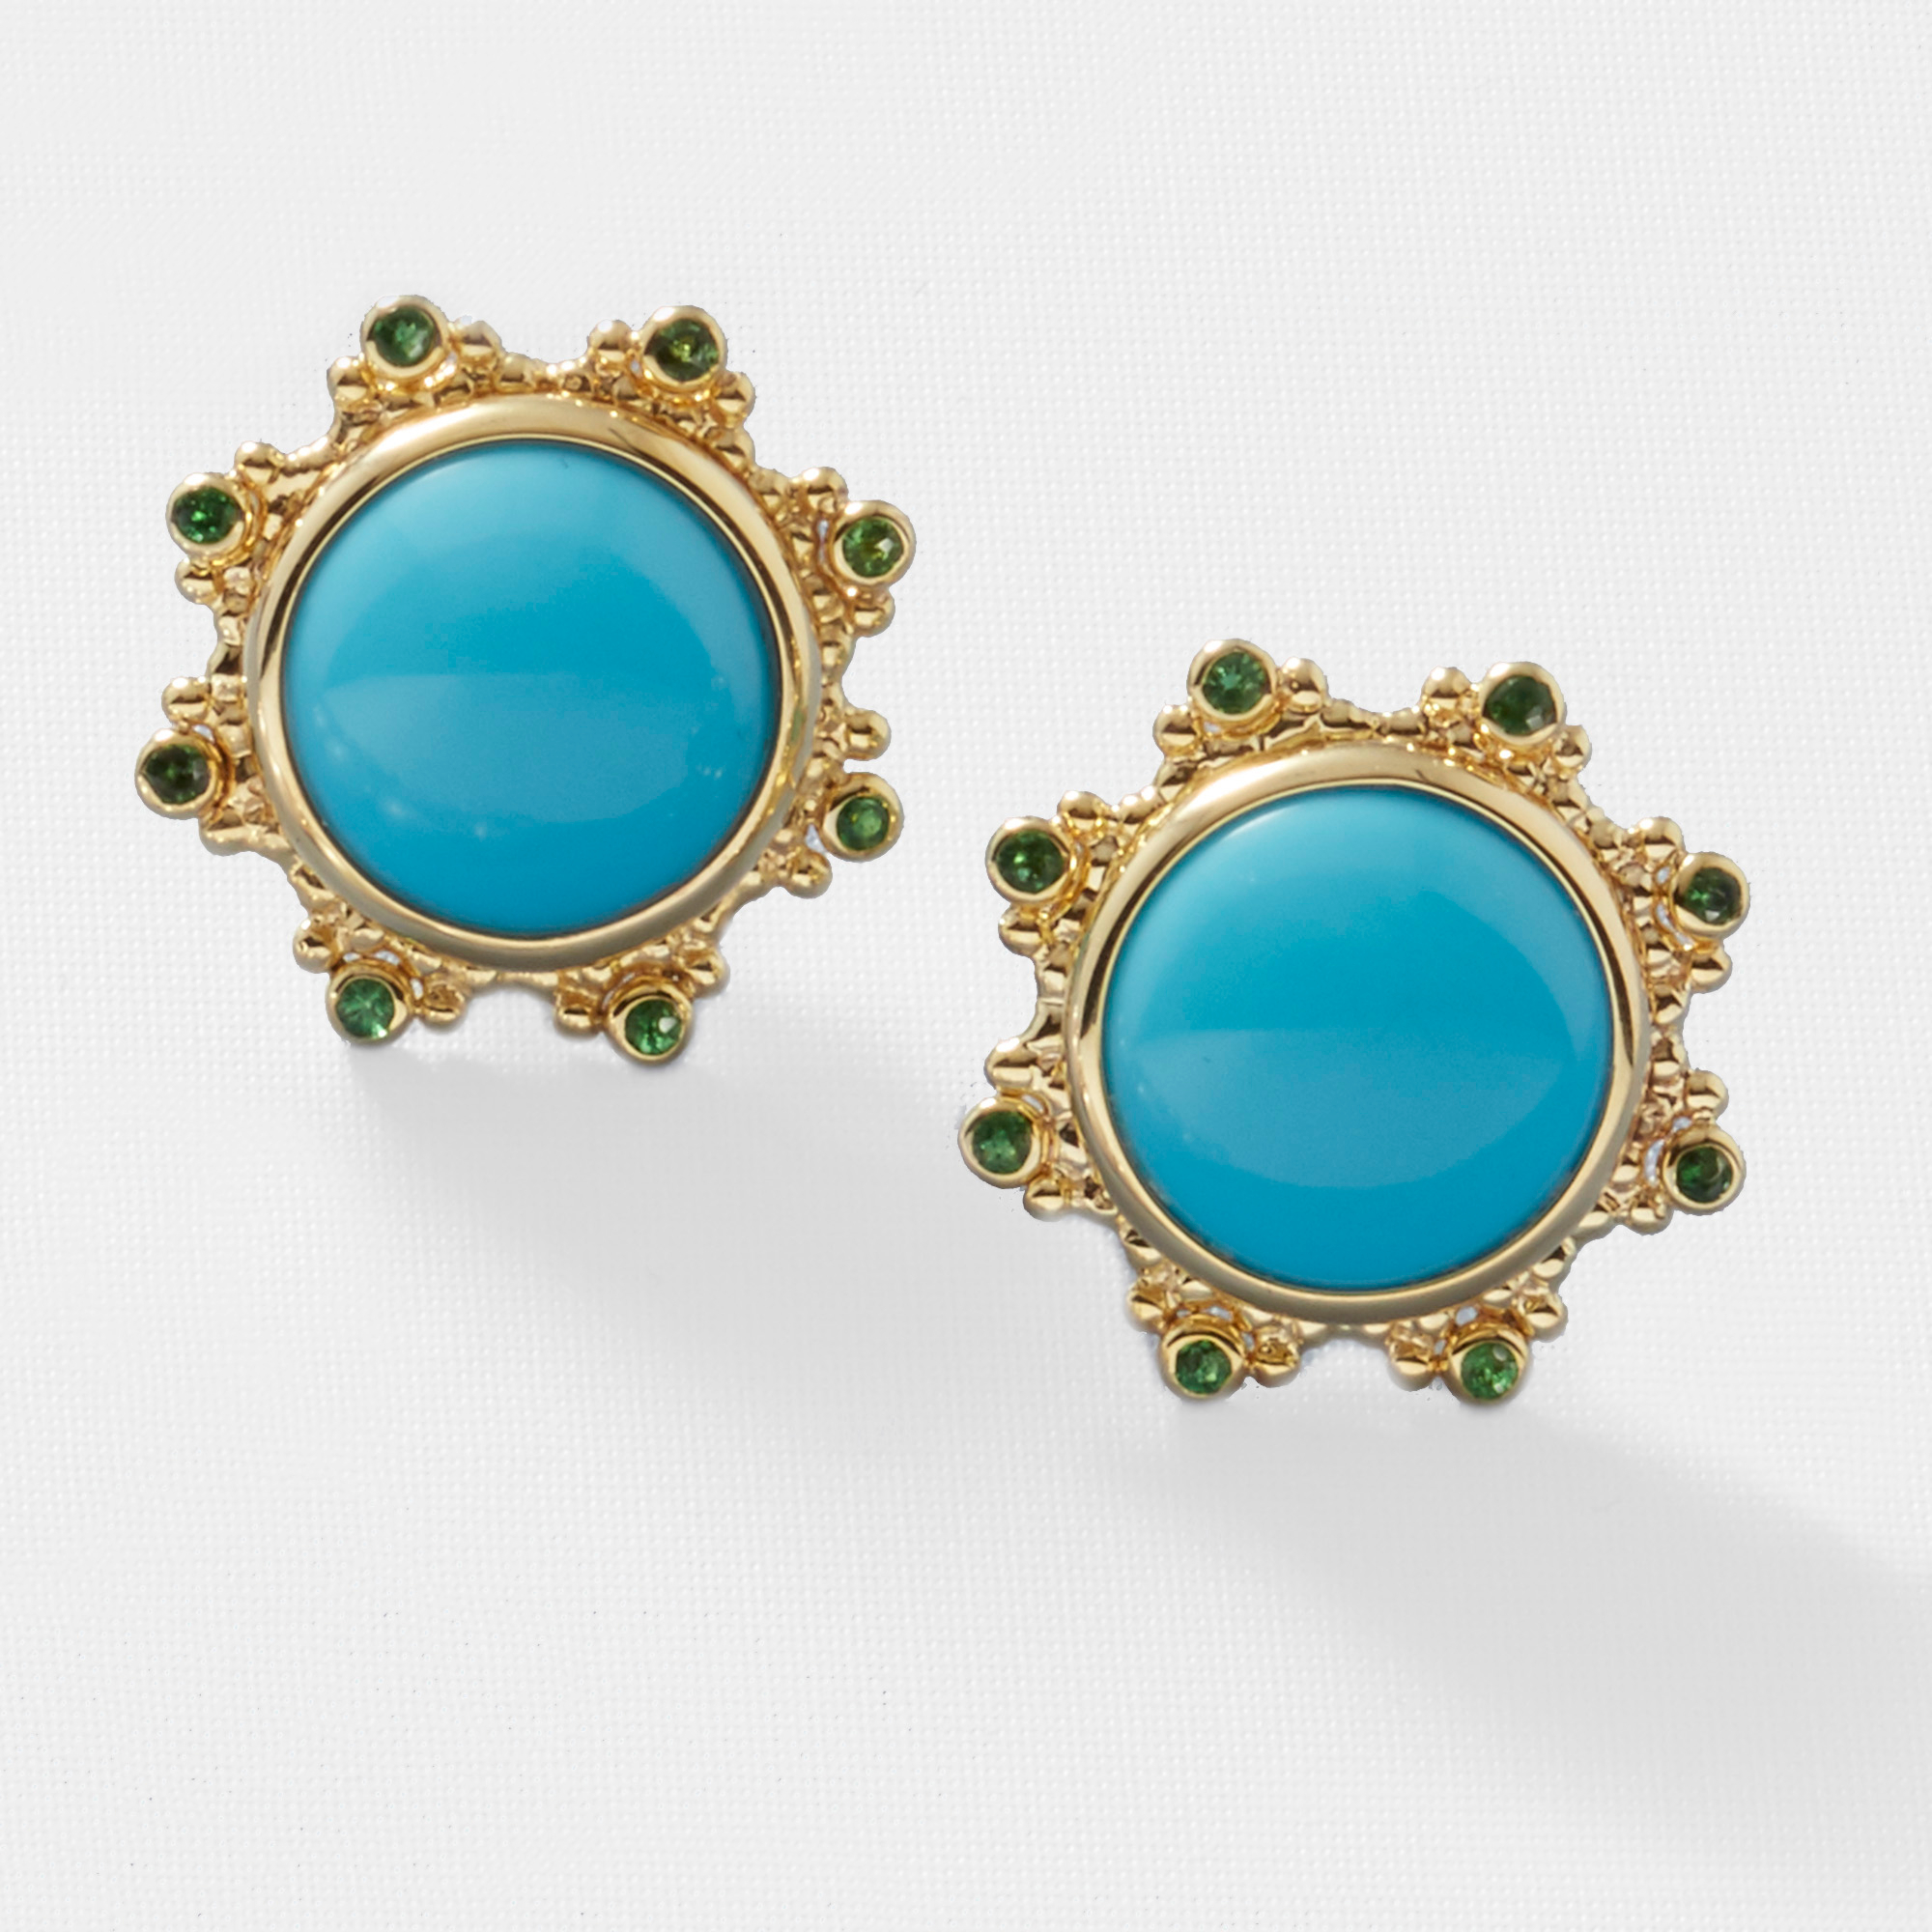 Turquoise & Tsavorite Sunburst Earrings